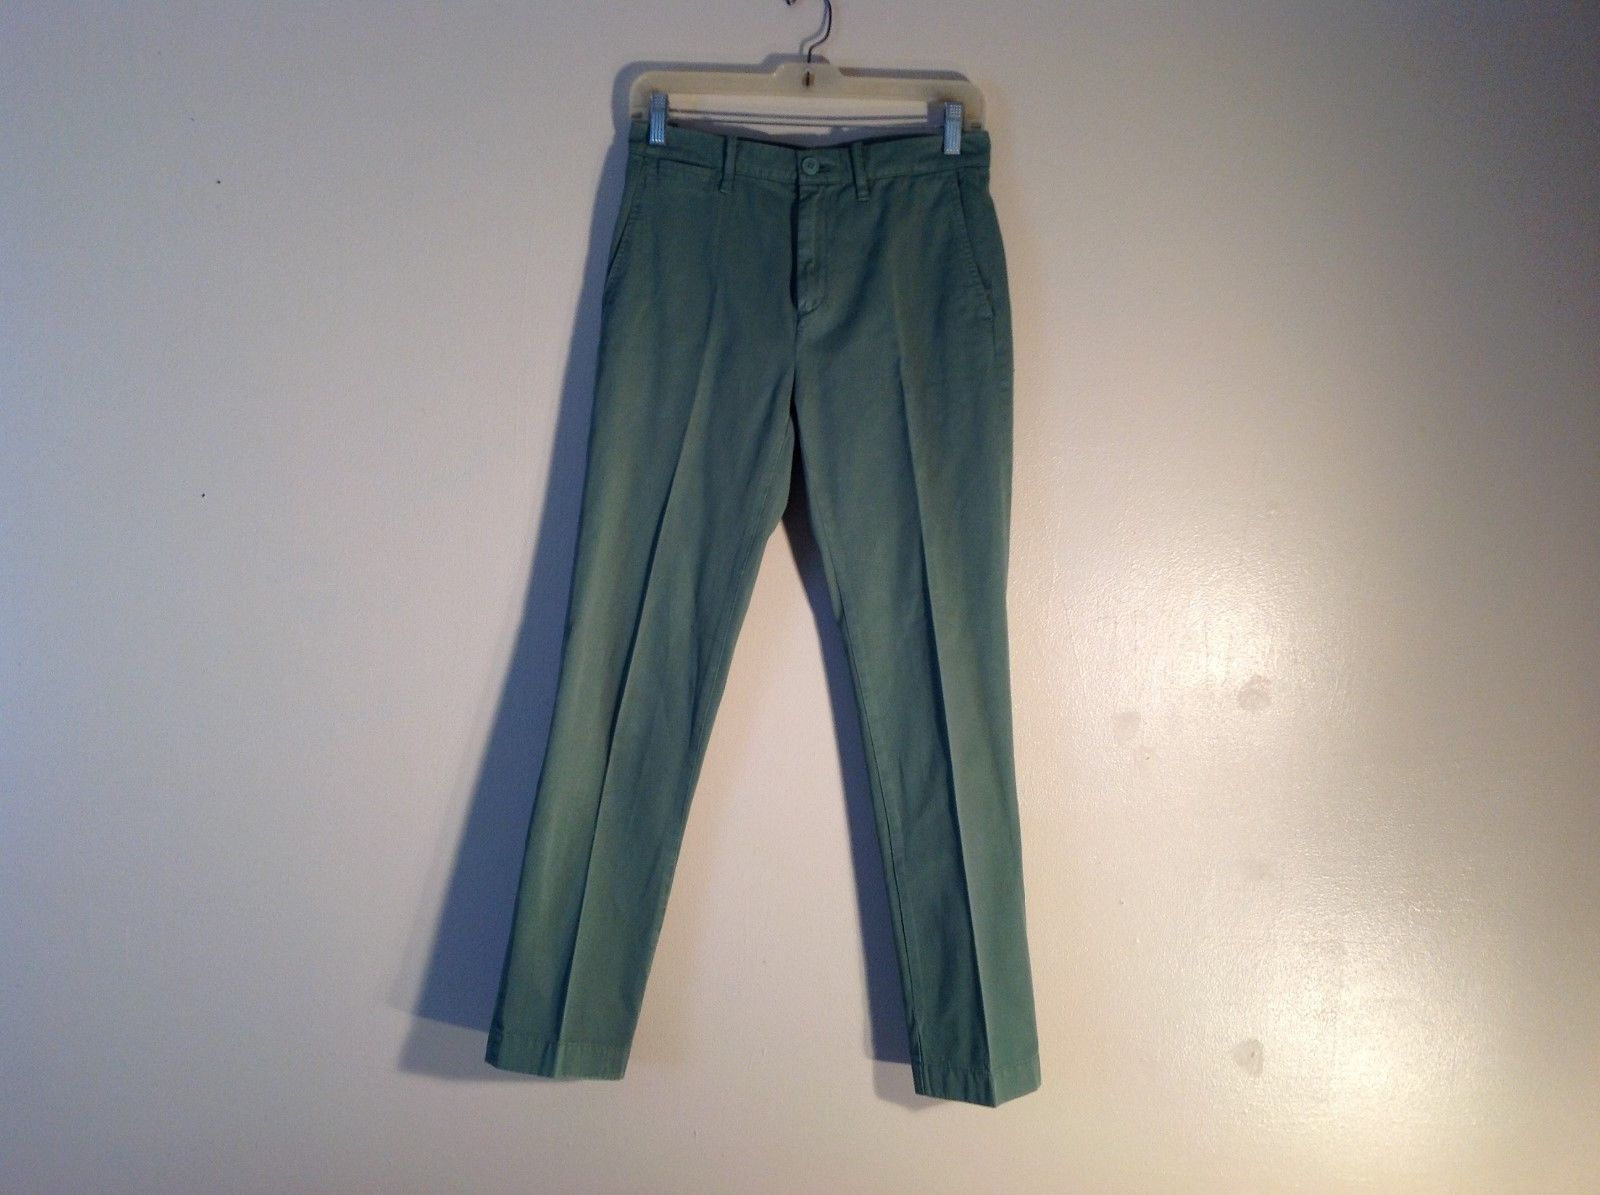 CREW CUTS Green Slim Sun Faded Pants 100% Cotton Size 14 young or skinny person